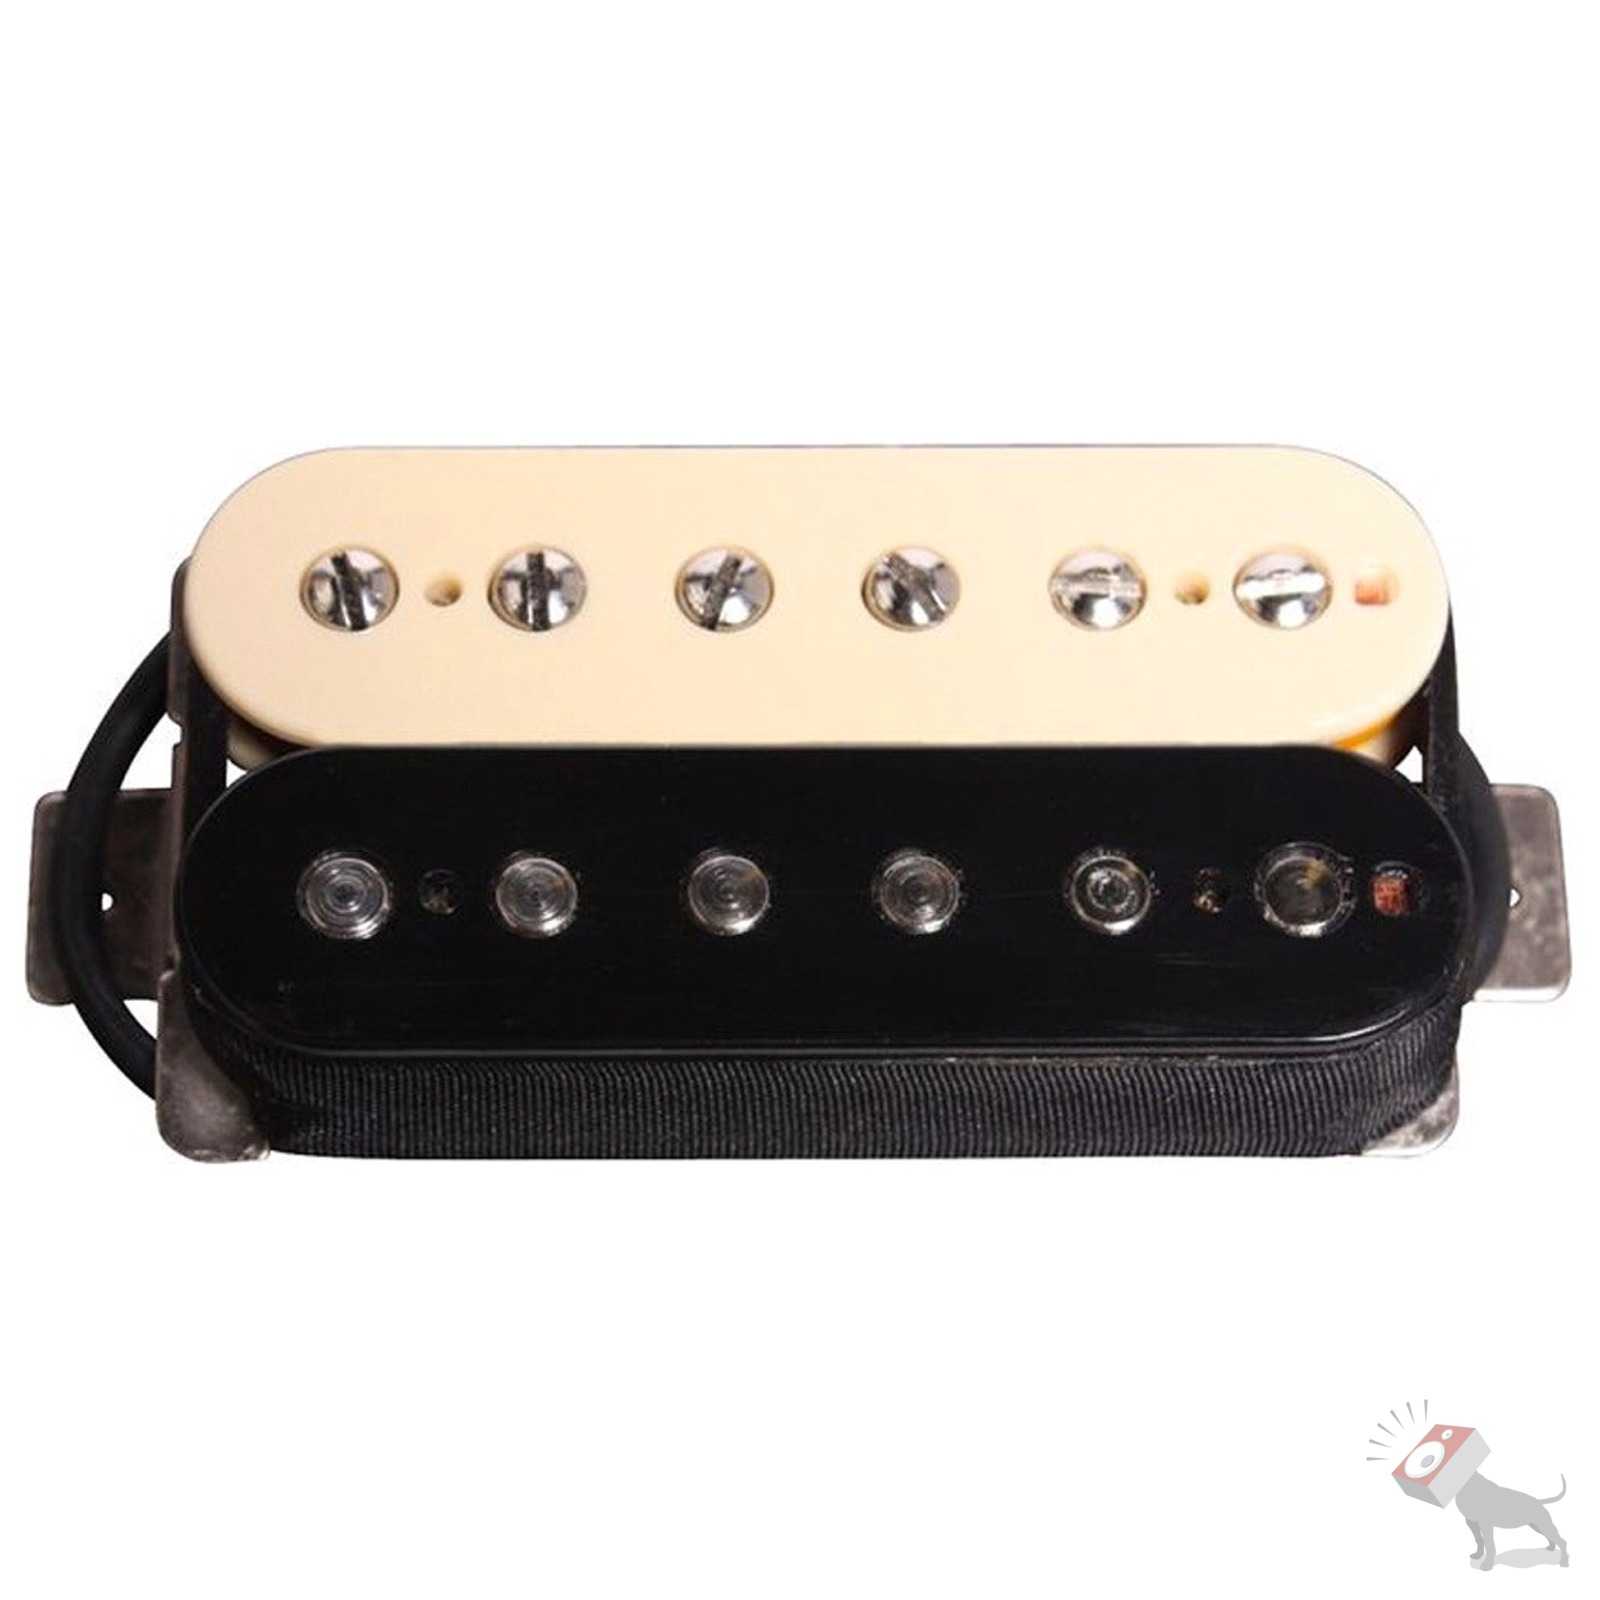 seymour duncan aph1b alnico ii pro humbucker bridge guitar pickup zebra 1110405z ebay. Black Bedroom Furniture Sets. Home Design Ideas